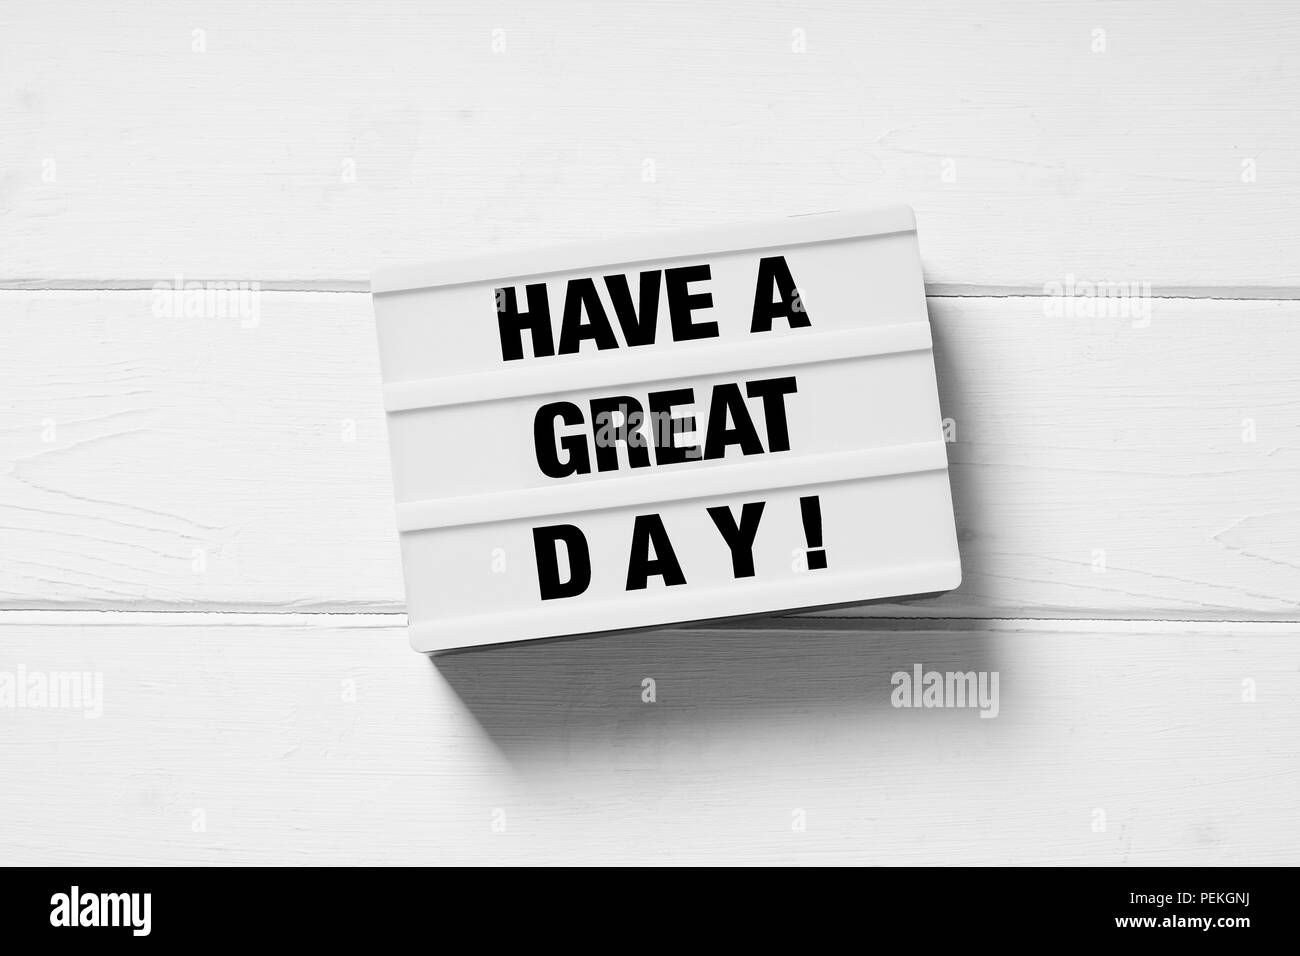 have a great day motivational text on light box light box sign on white wooden background - Stock Image